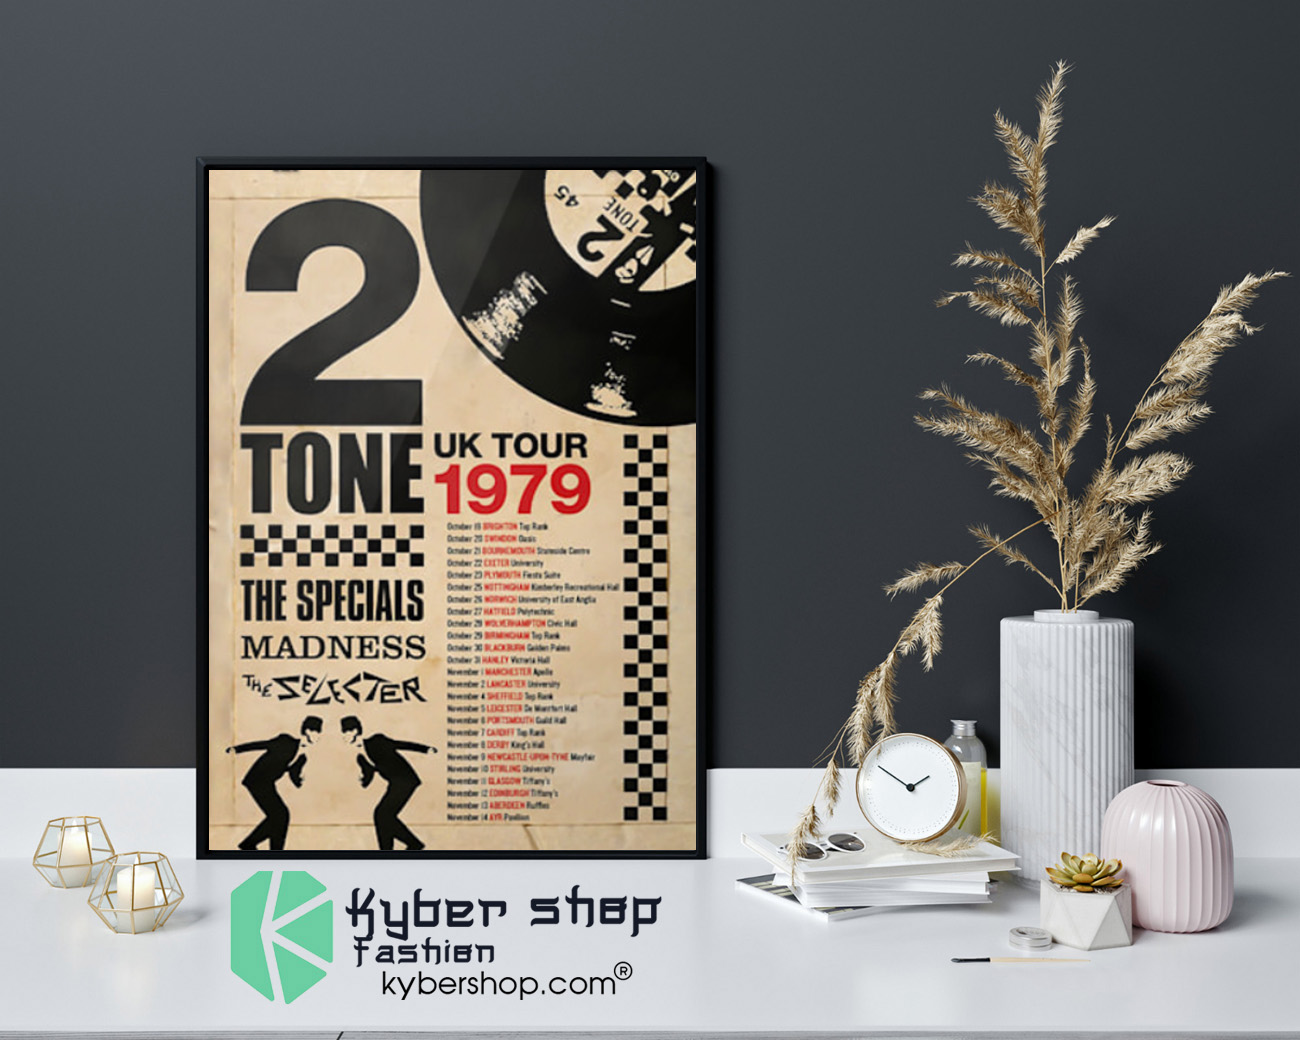 2 Tone UK tour 1979 the specials madness poster 3 1